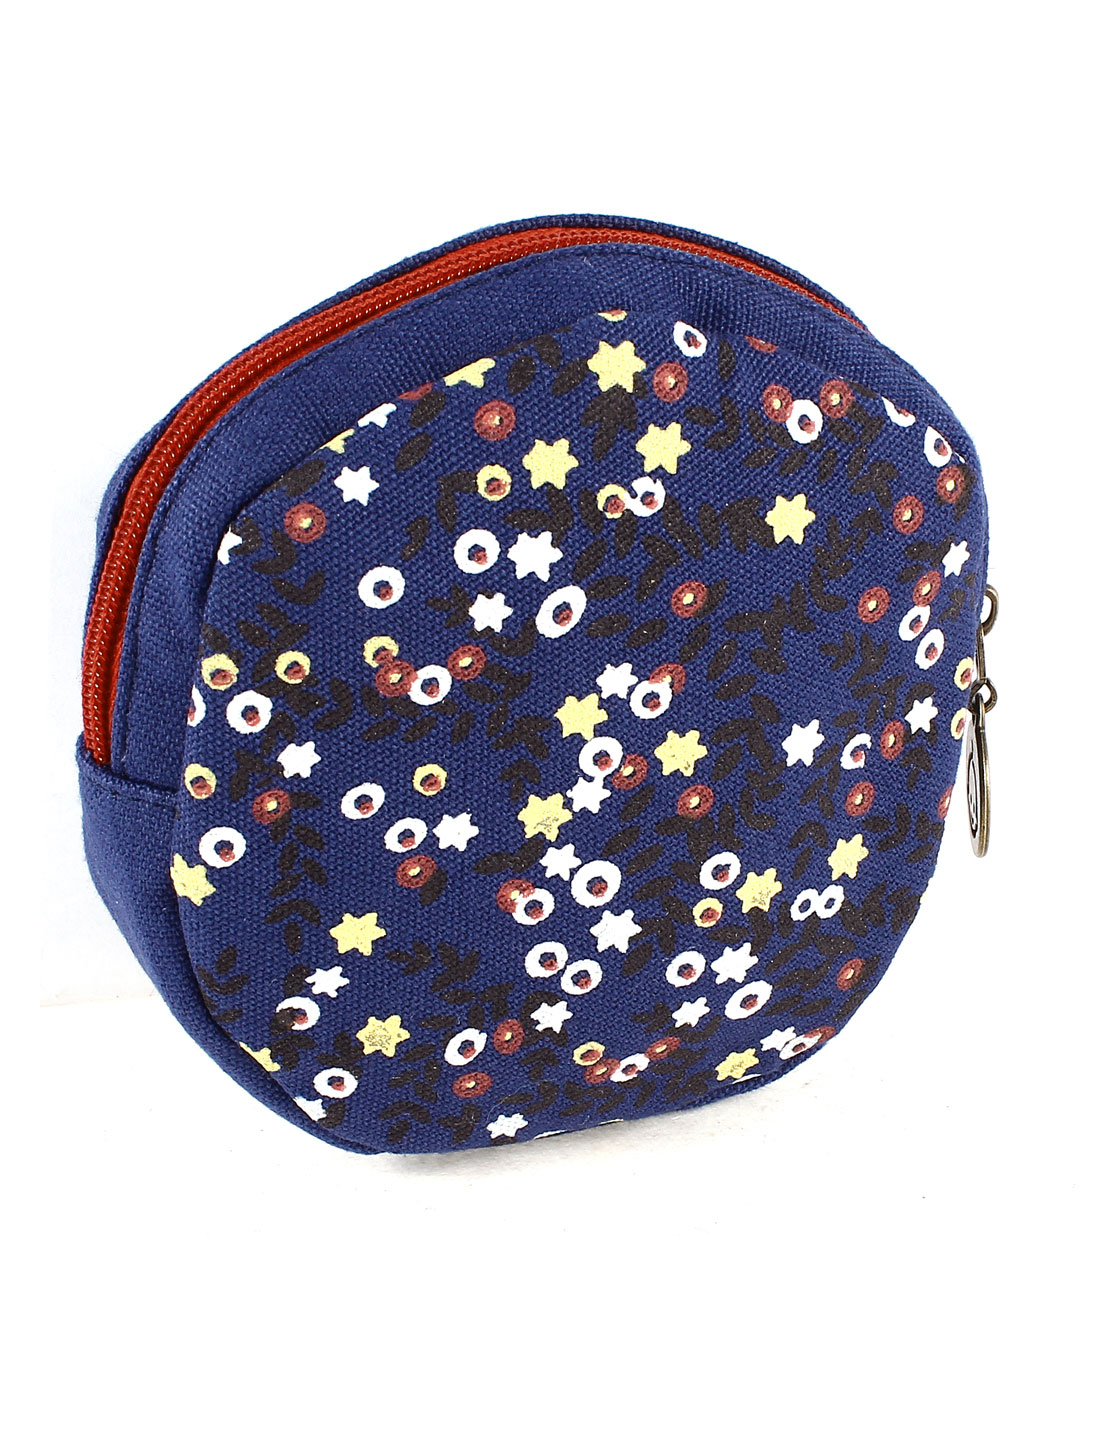 Zipper Closure Flower Pattern Round Shape Cash Coin Money Key Credit Card Purse Bag Dark Blue for Lady